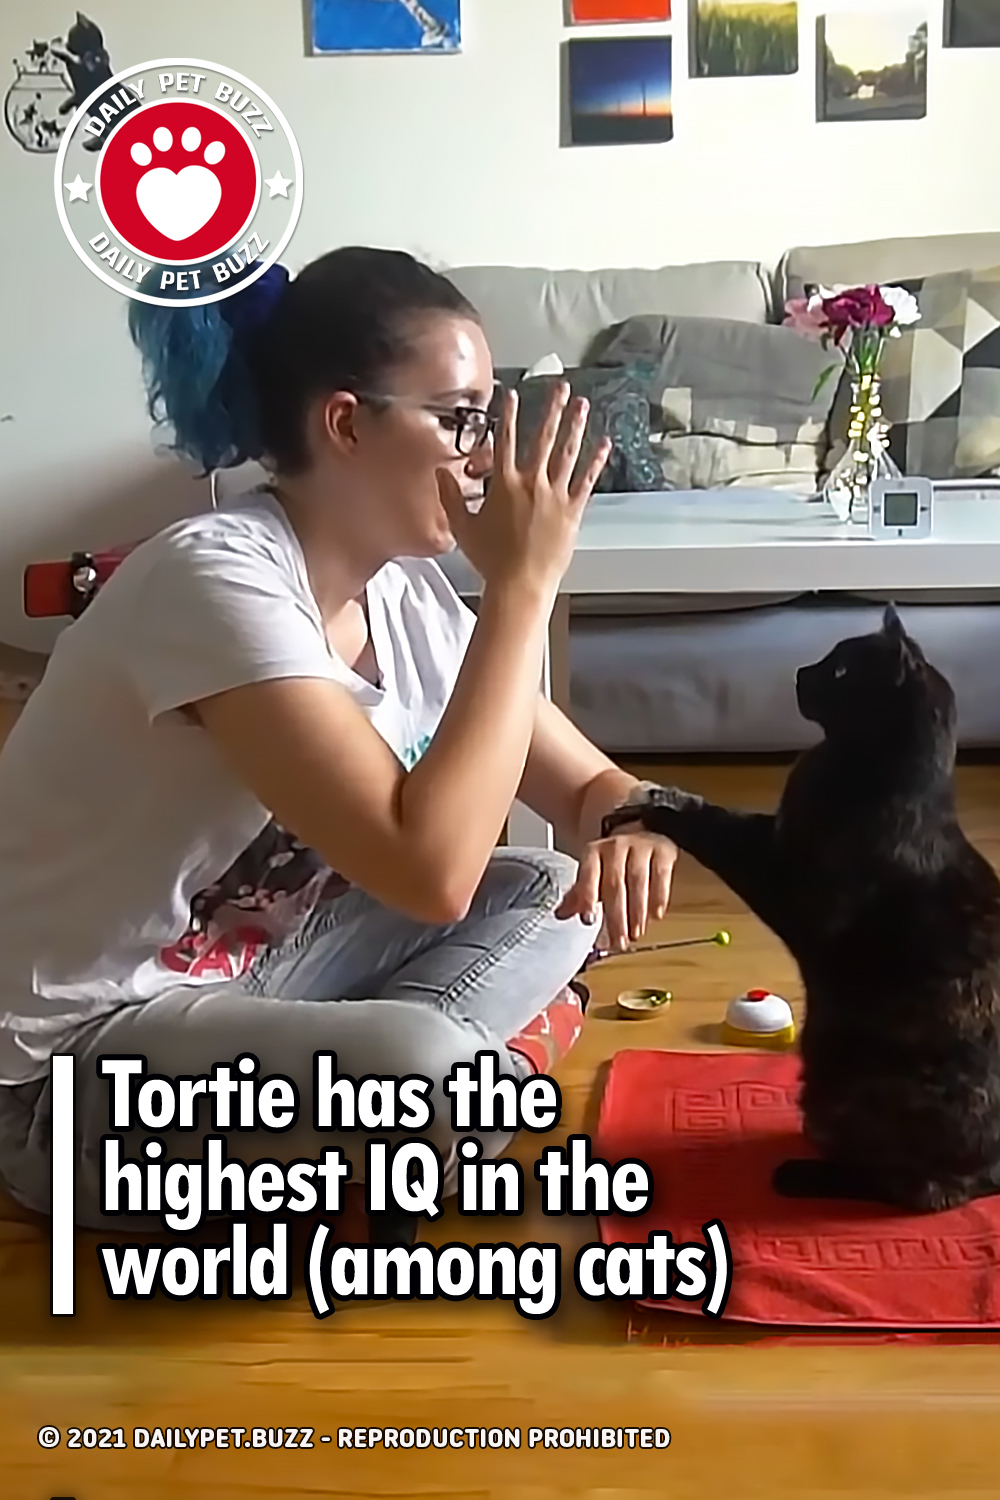 Tortie has the highest IQ in the world (among cats)